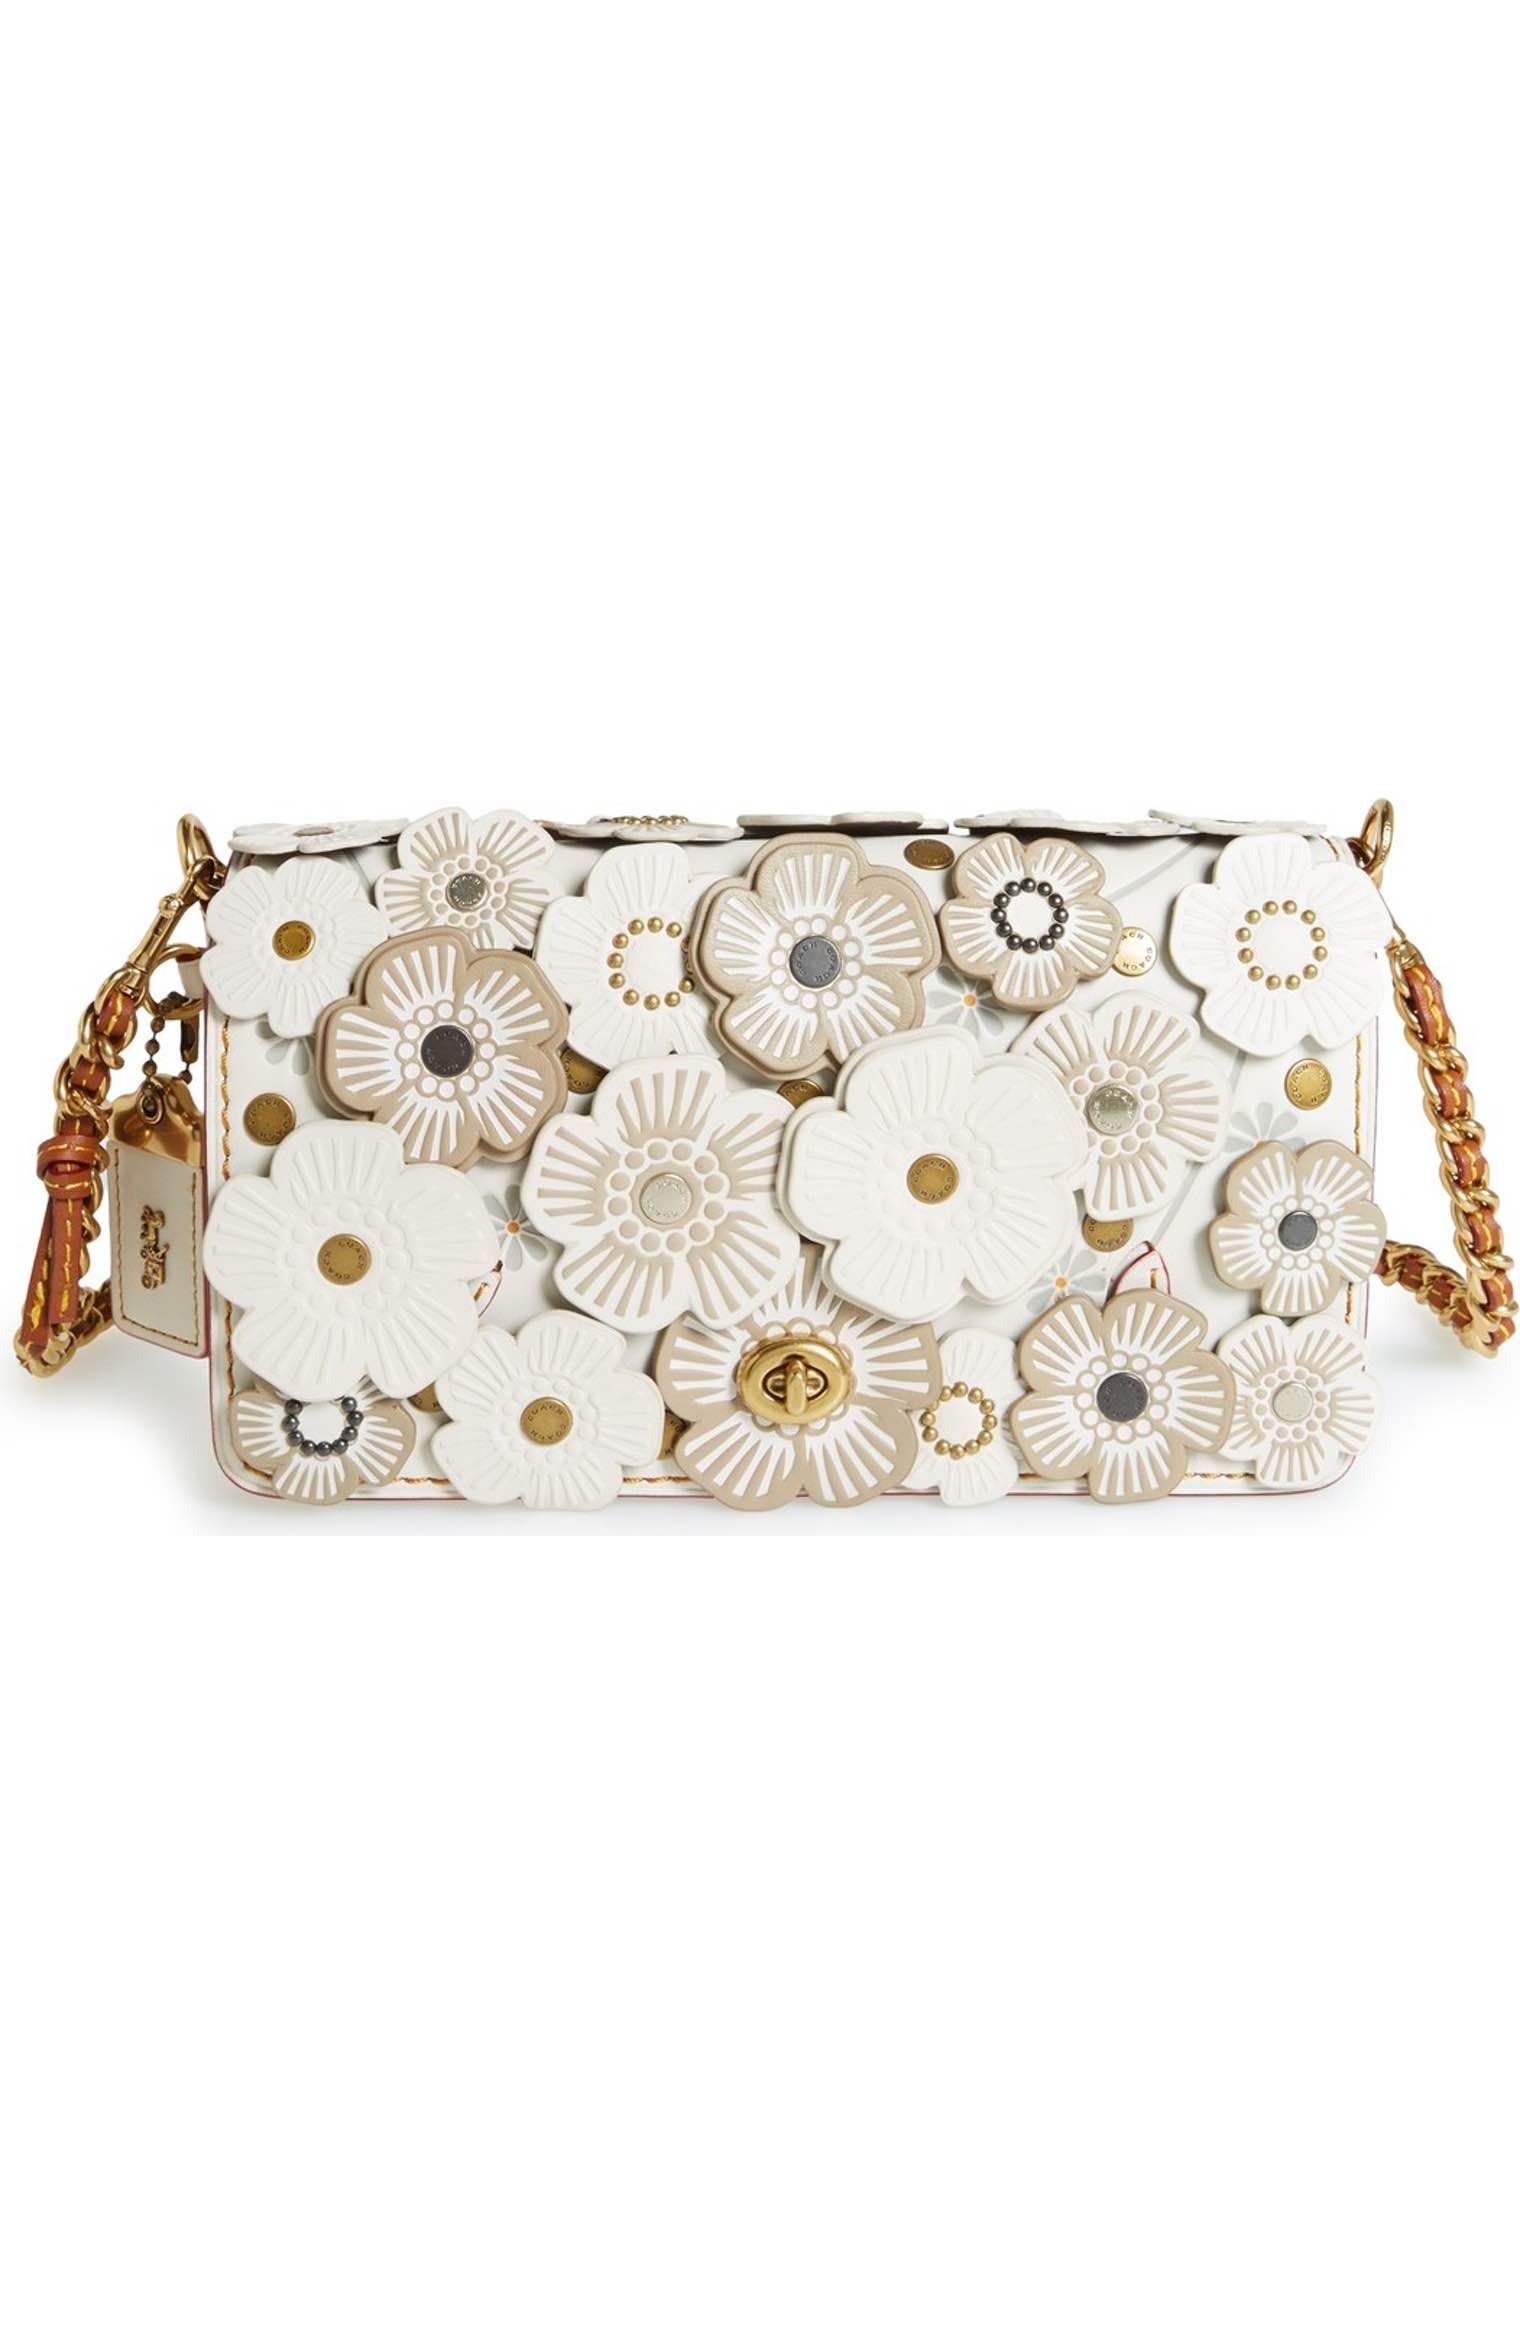 Main Image - COACH 1941  Dinky  Flower Appliqué Leather Crossbody ... d67406e0cde76